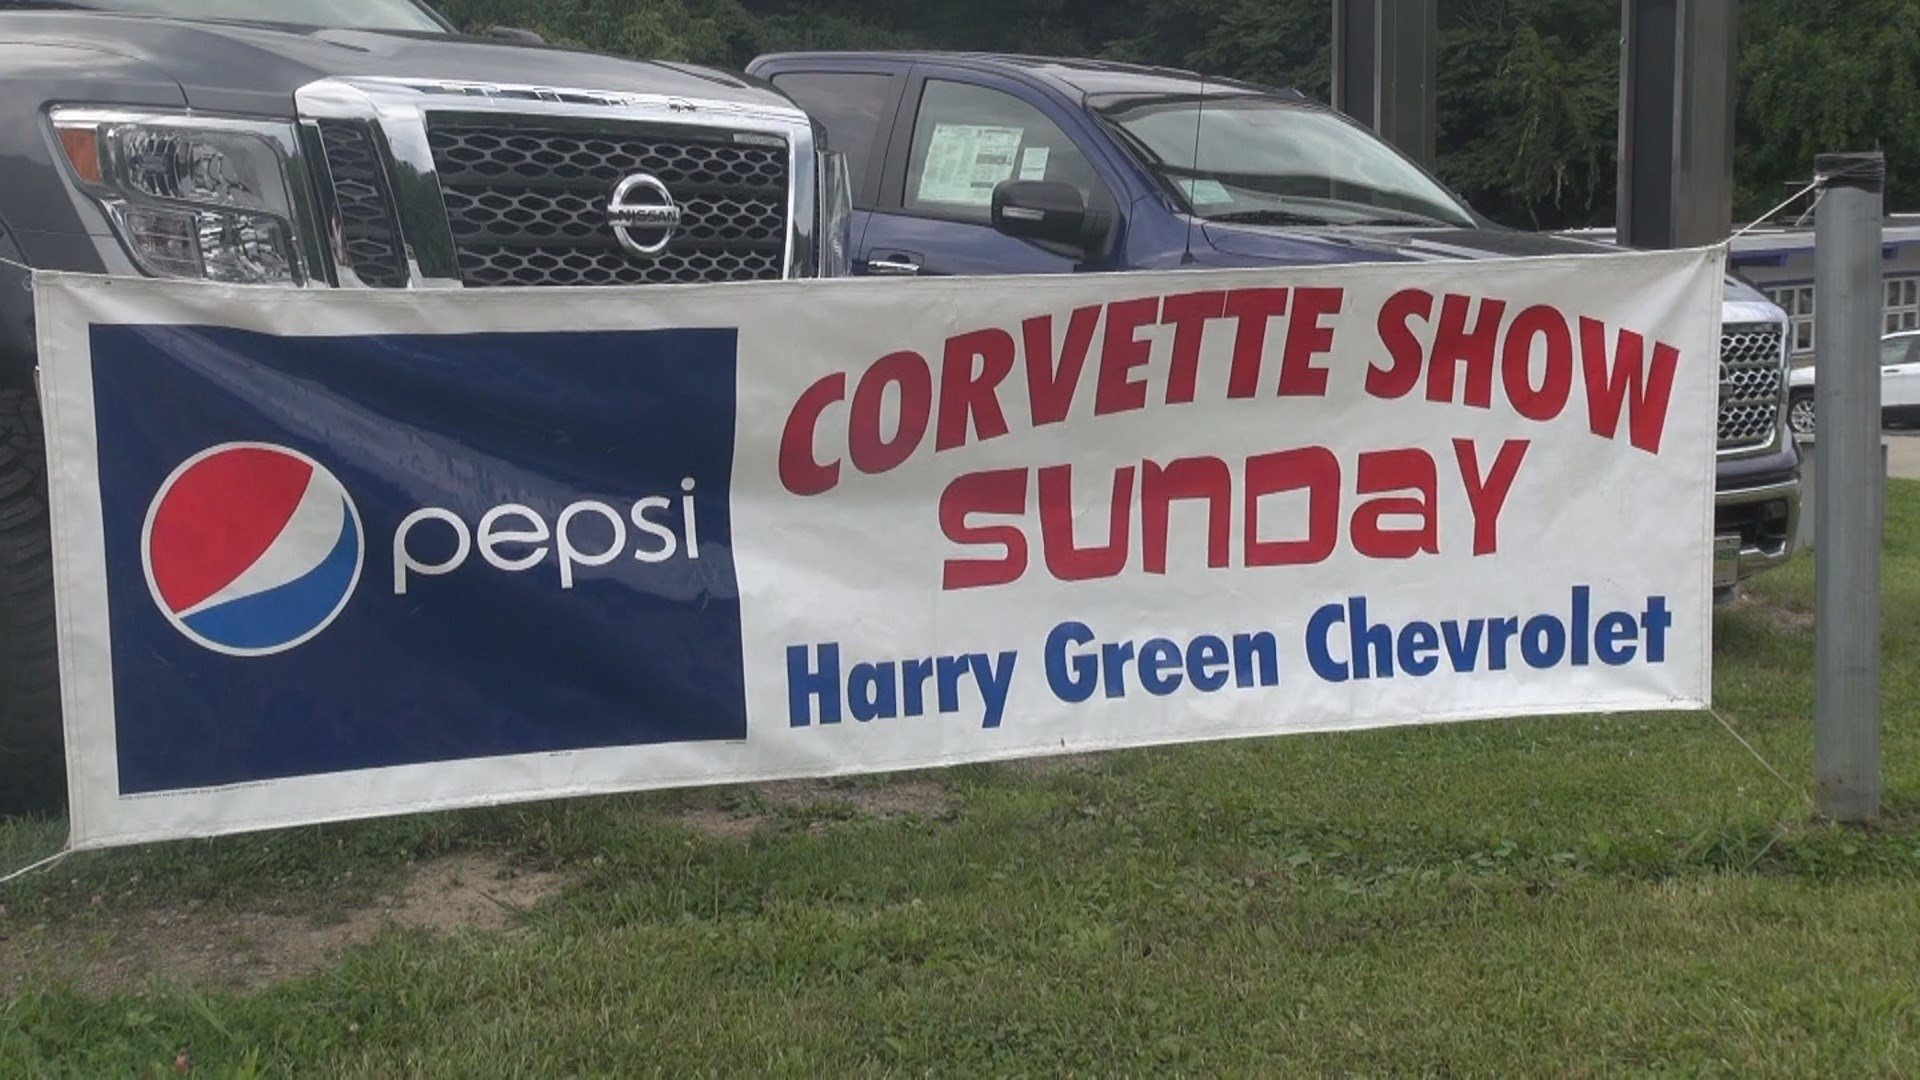 harry green chevrolet and corvette club host 45th anniversary of wboy cla. Cars Review. Best American Auto & Cars Review